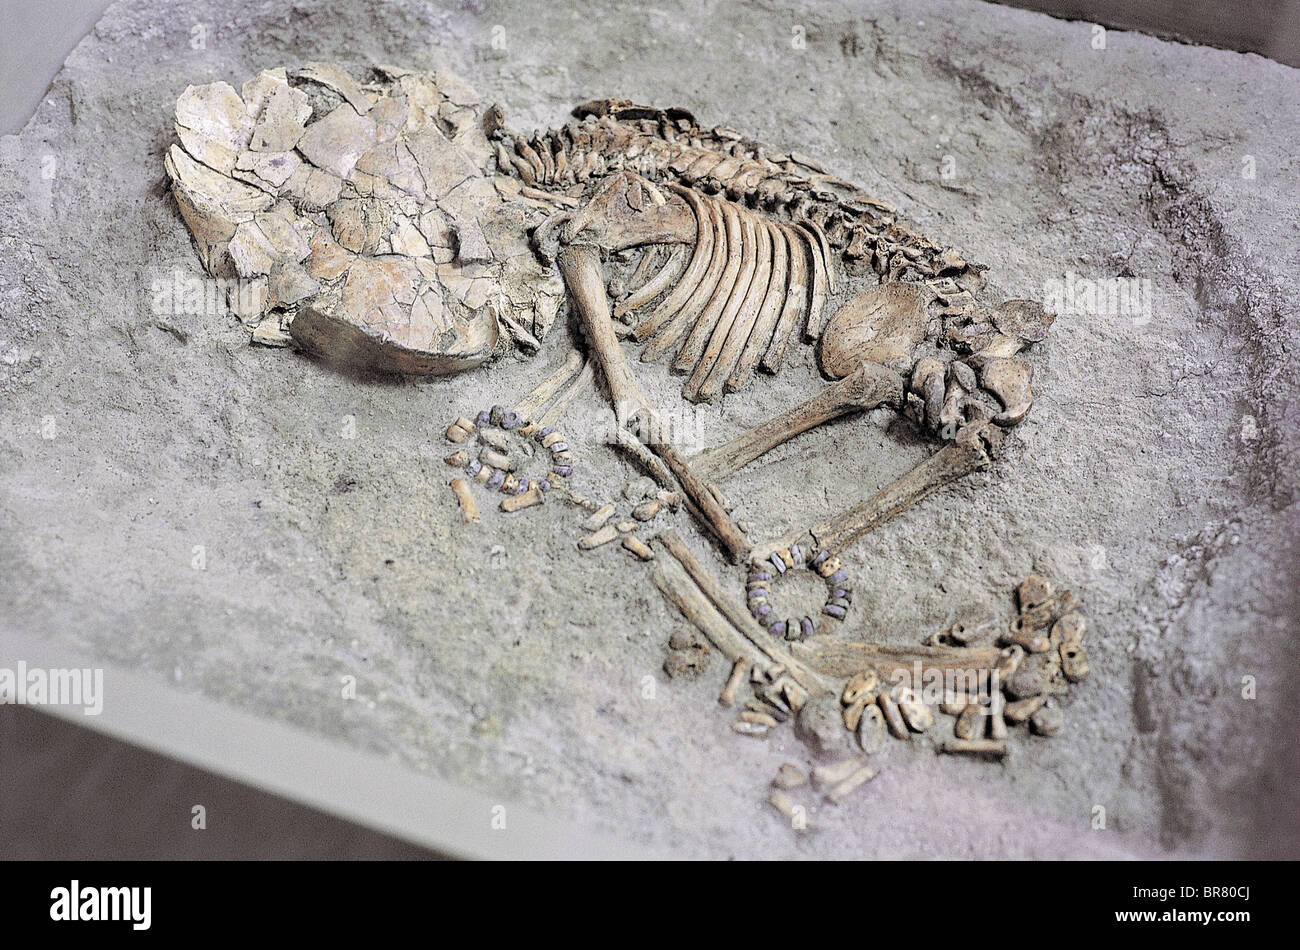 Child burial with necklaces and ornaments in Catalhoyuk Turkey - Stock Image